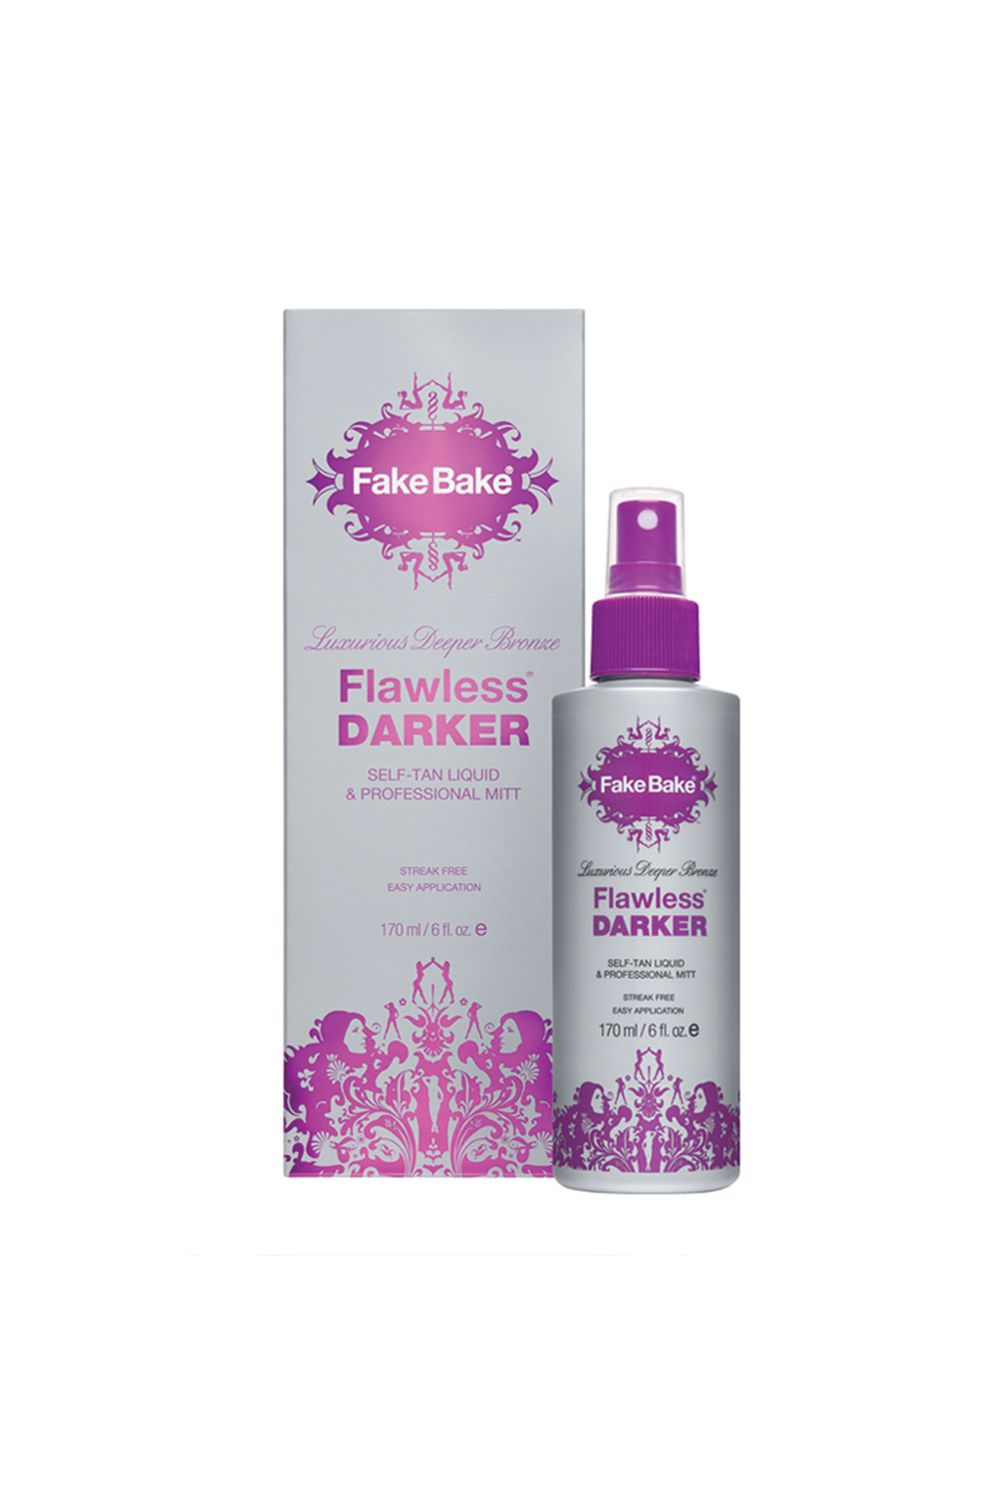 "<p>Not many self-tanners can take darker skin to an even deeper shade without looking weirdly fake, but this cult-favorite spray can and does, and even includes a mitt for easier application.</p><p><i data-redactor-tag=""i"">Fake Bake Flawless Darker, $30</i></p><p><strong data-redactor-tag=""strong"">BUY IT: </strong><a href=""https://us.fakebake.com/store/flawless-darker.html""><strong data-redactor-tag=""strong"">us.fakebake.com</strong></a><strong data-redactor-tag=""strong"">.</strong></p>"